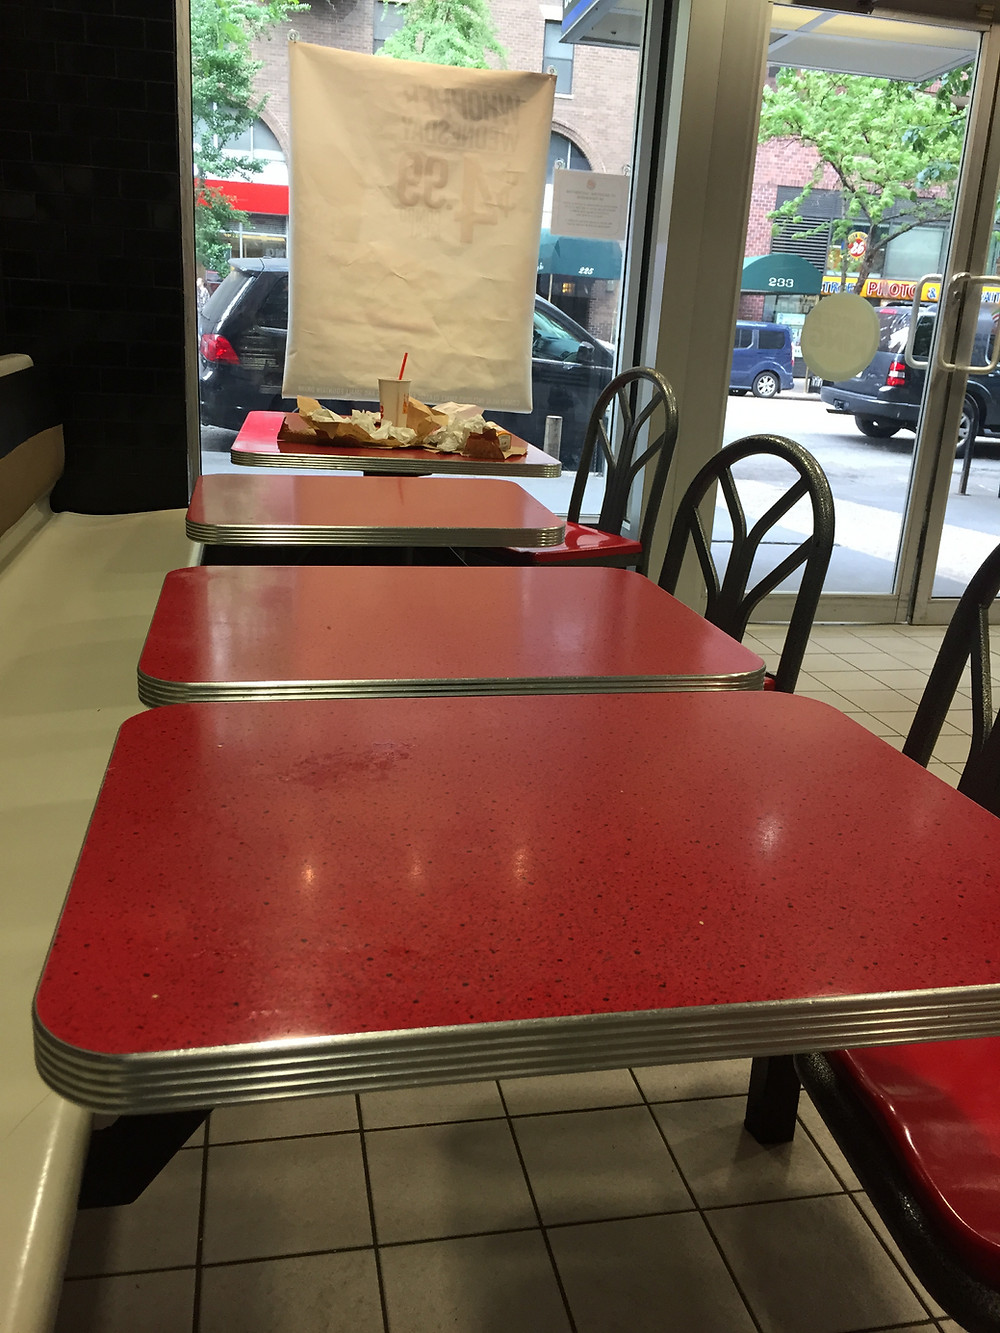 Lazy slob leaves his garbage on a Burger King table for the imaginary waitstaff to clean #2